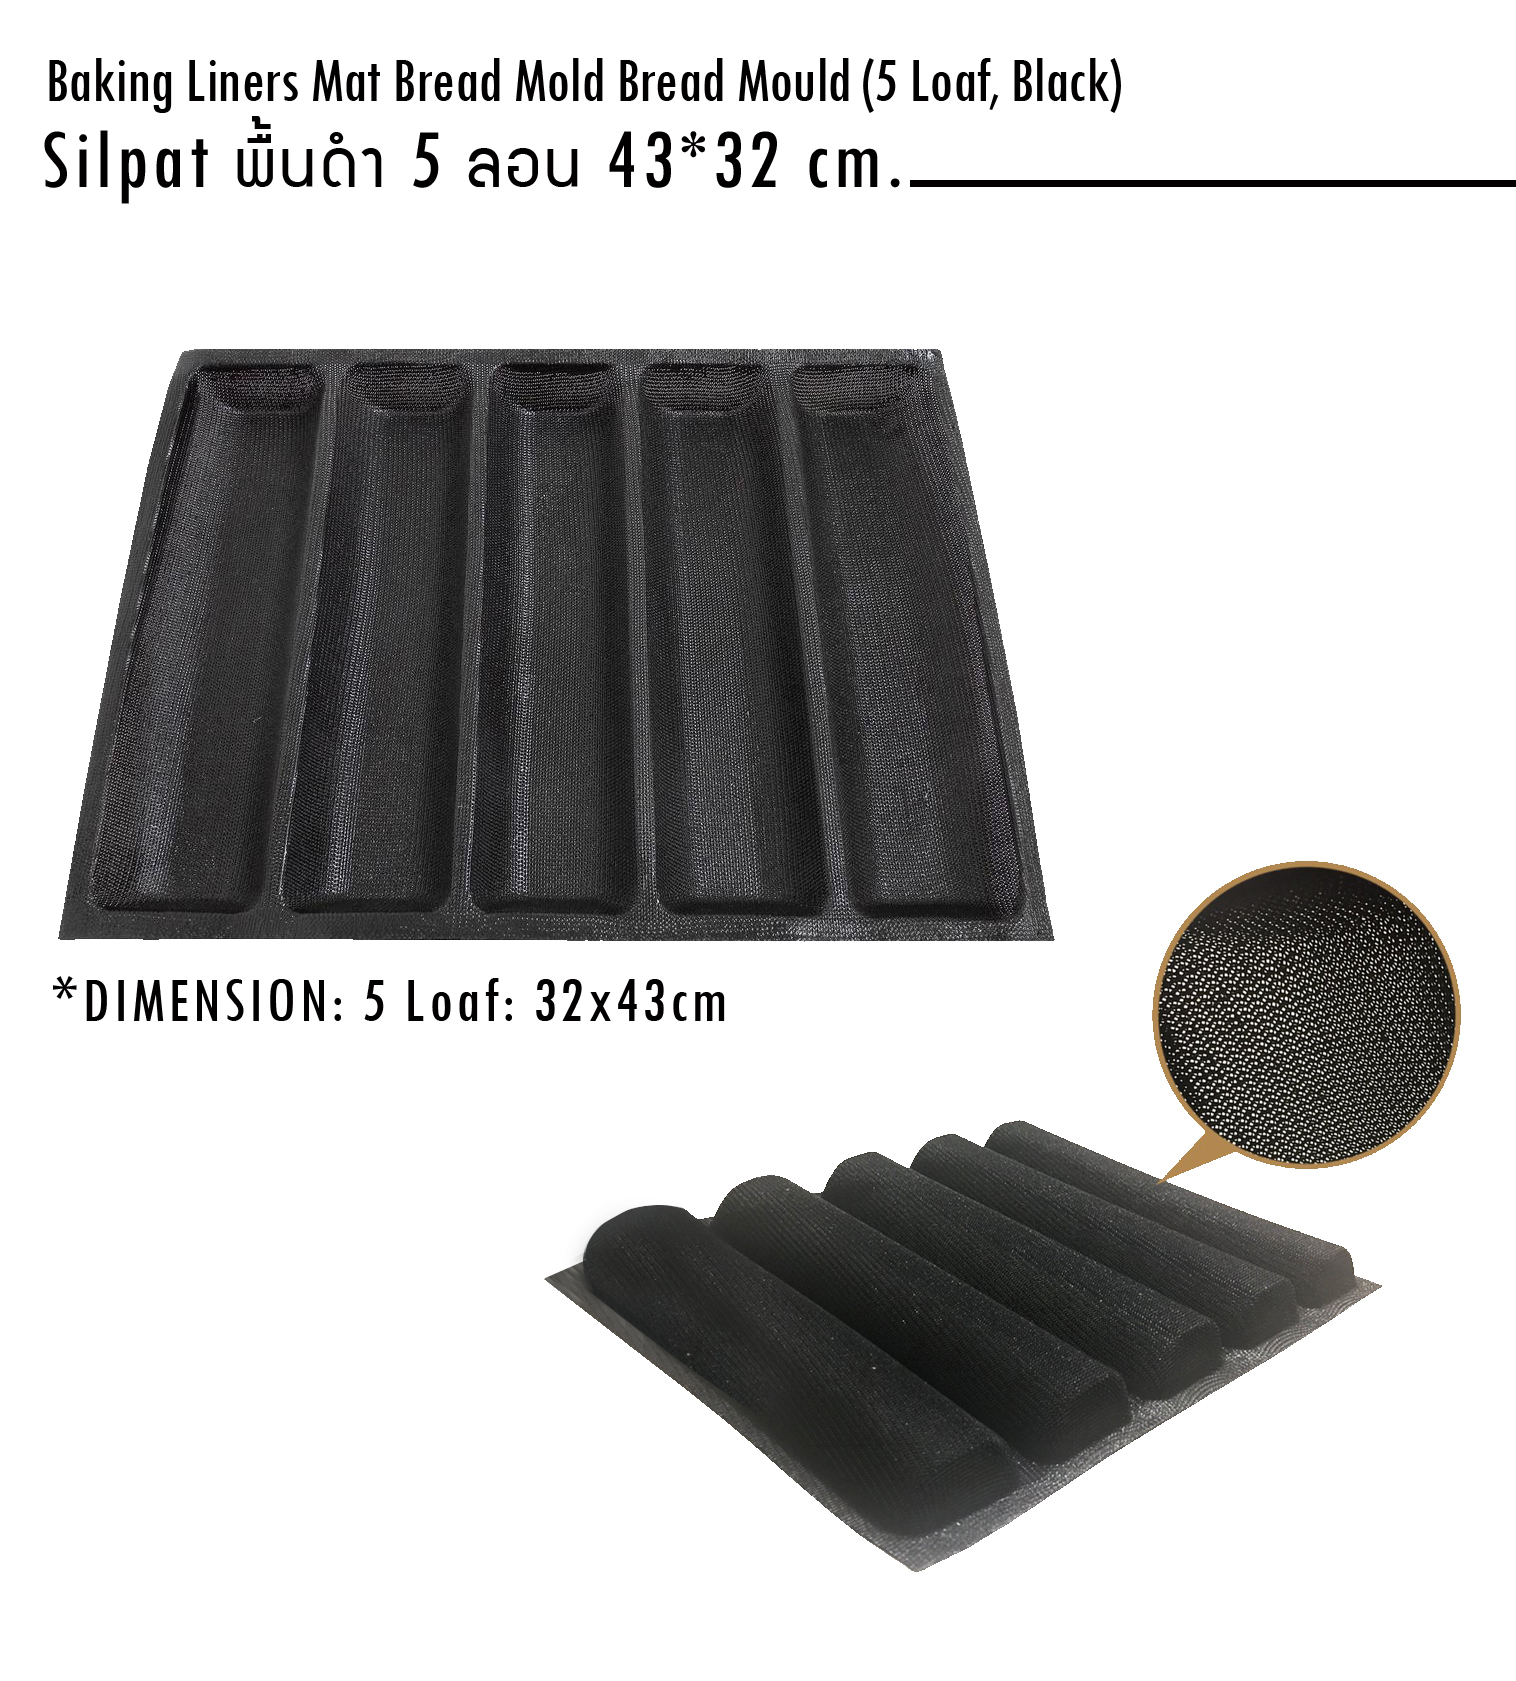 Baking Liners Mat Bread Mold Bread Mould (5 Loaf, Black) // Silpat พื้นดำ 5ลอน (43*32 cm). cn.